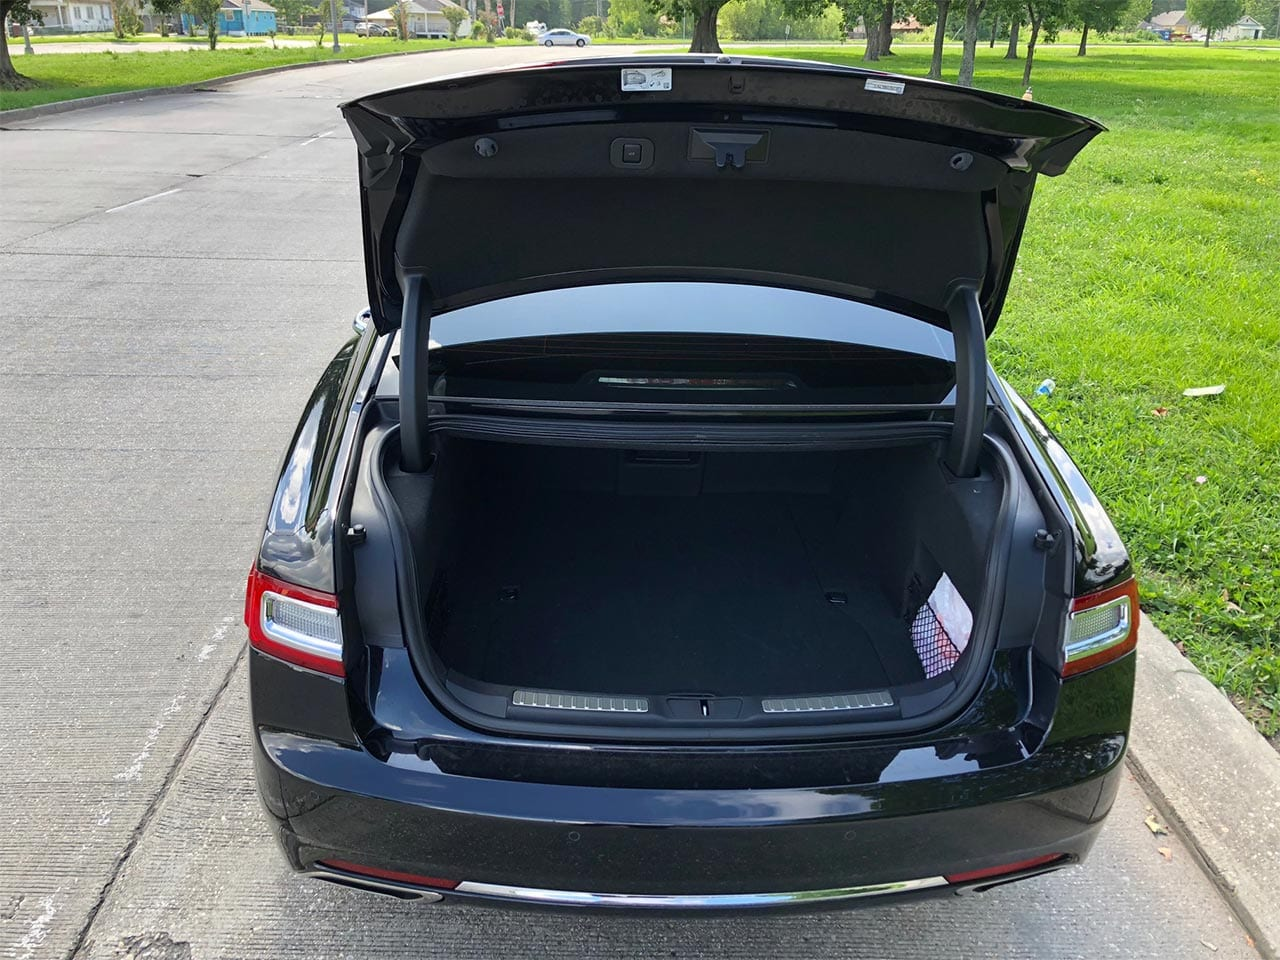 Sedan Luggage Space